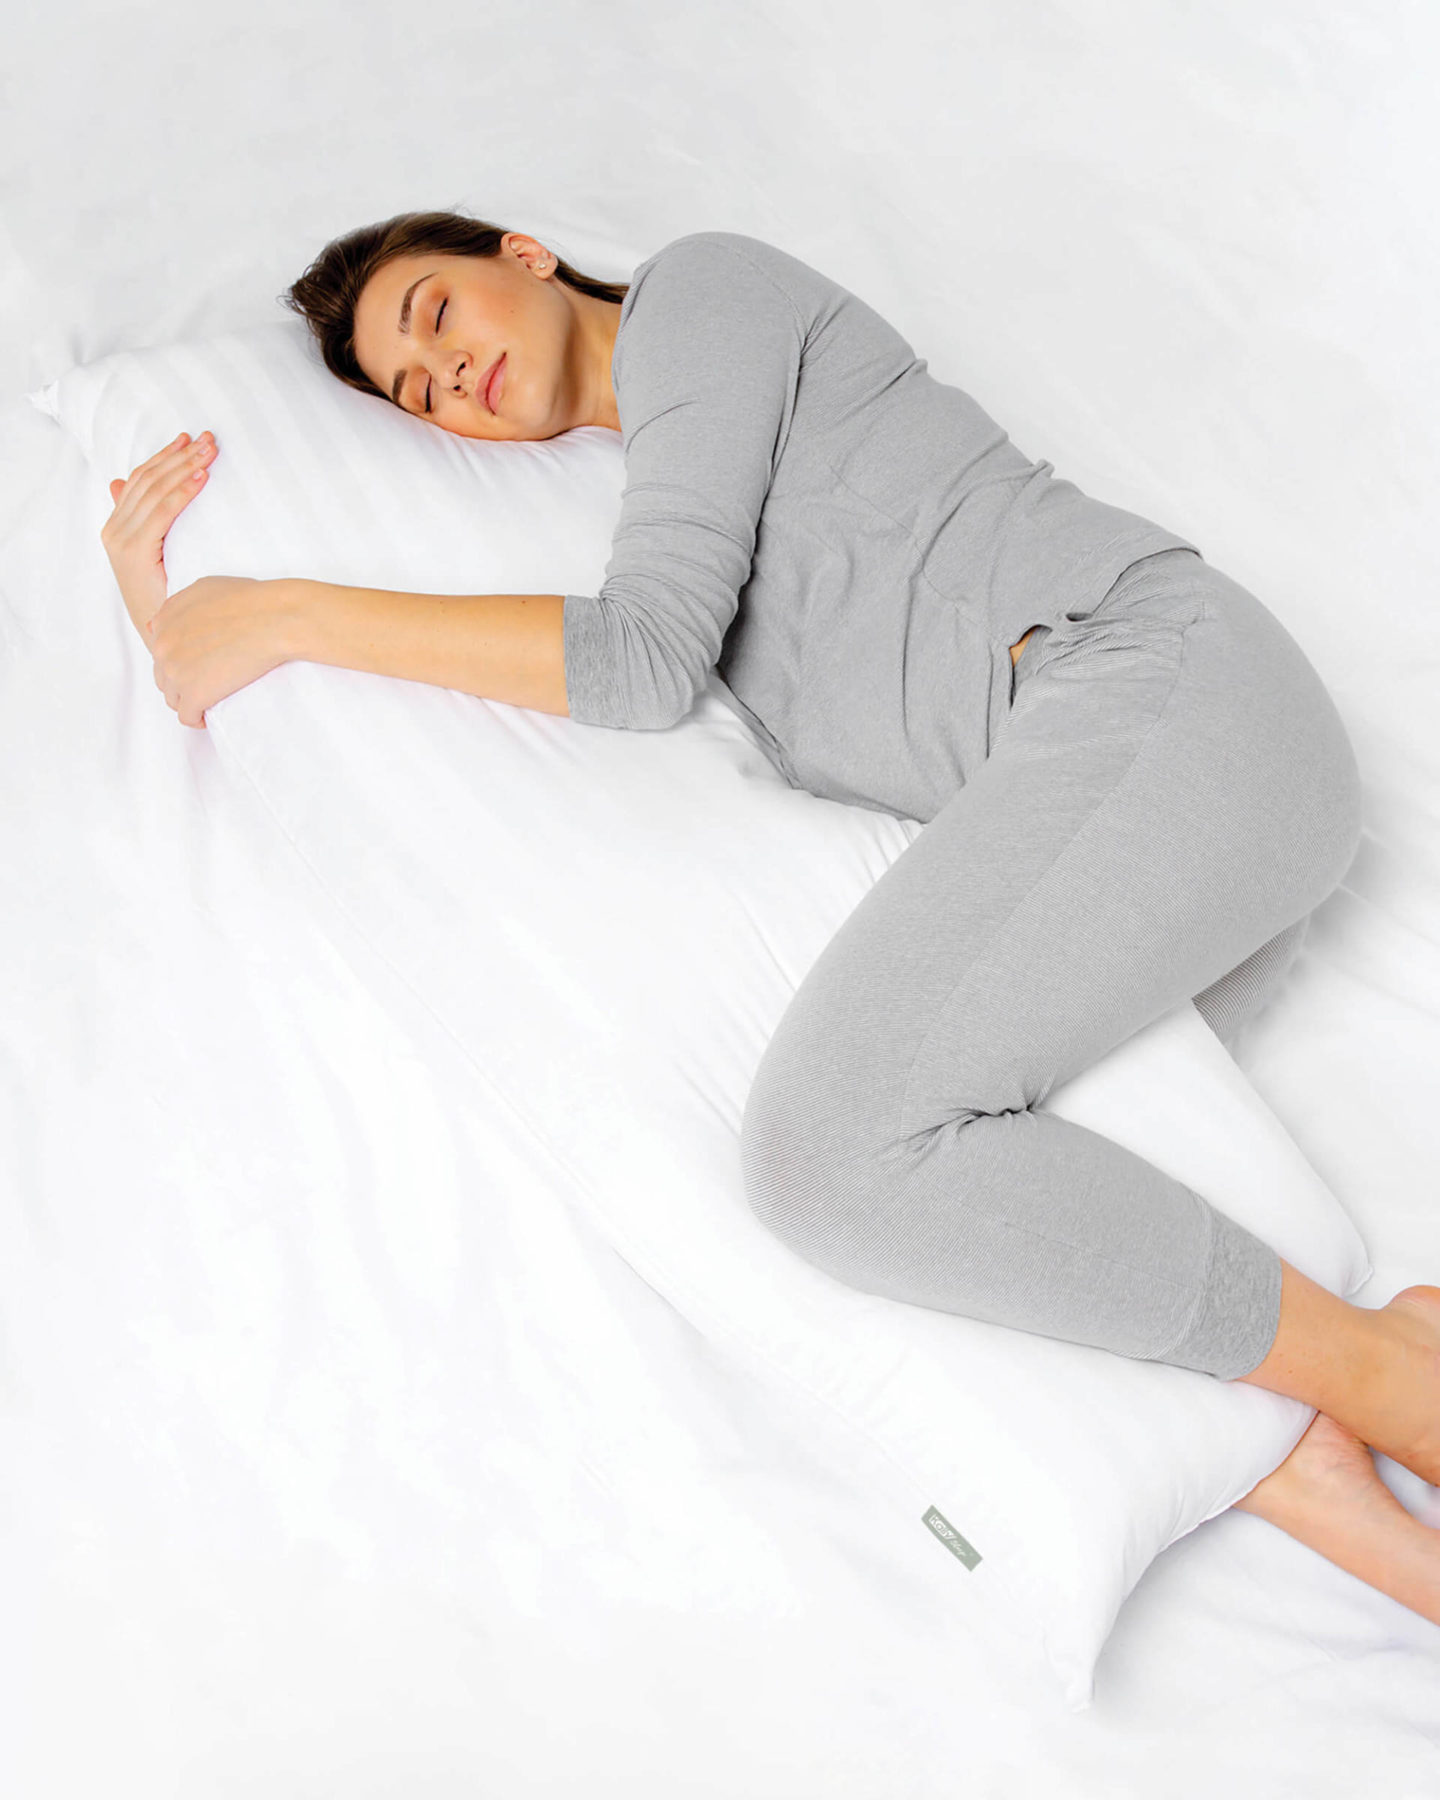 pregnant woman sleeping with bolster support pillow from kally sleep